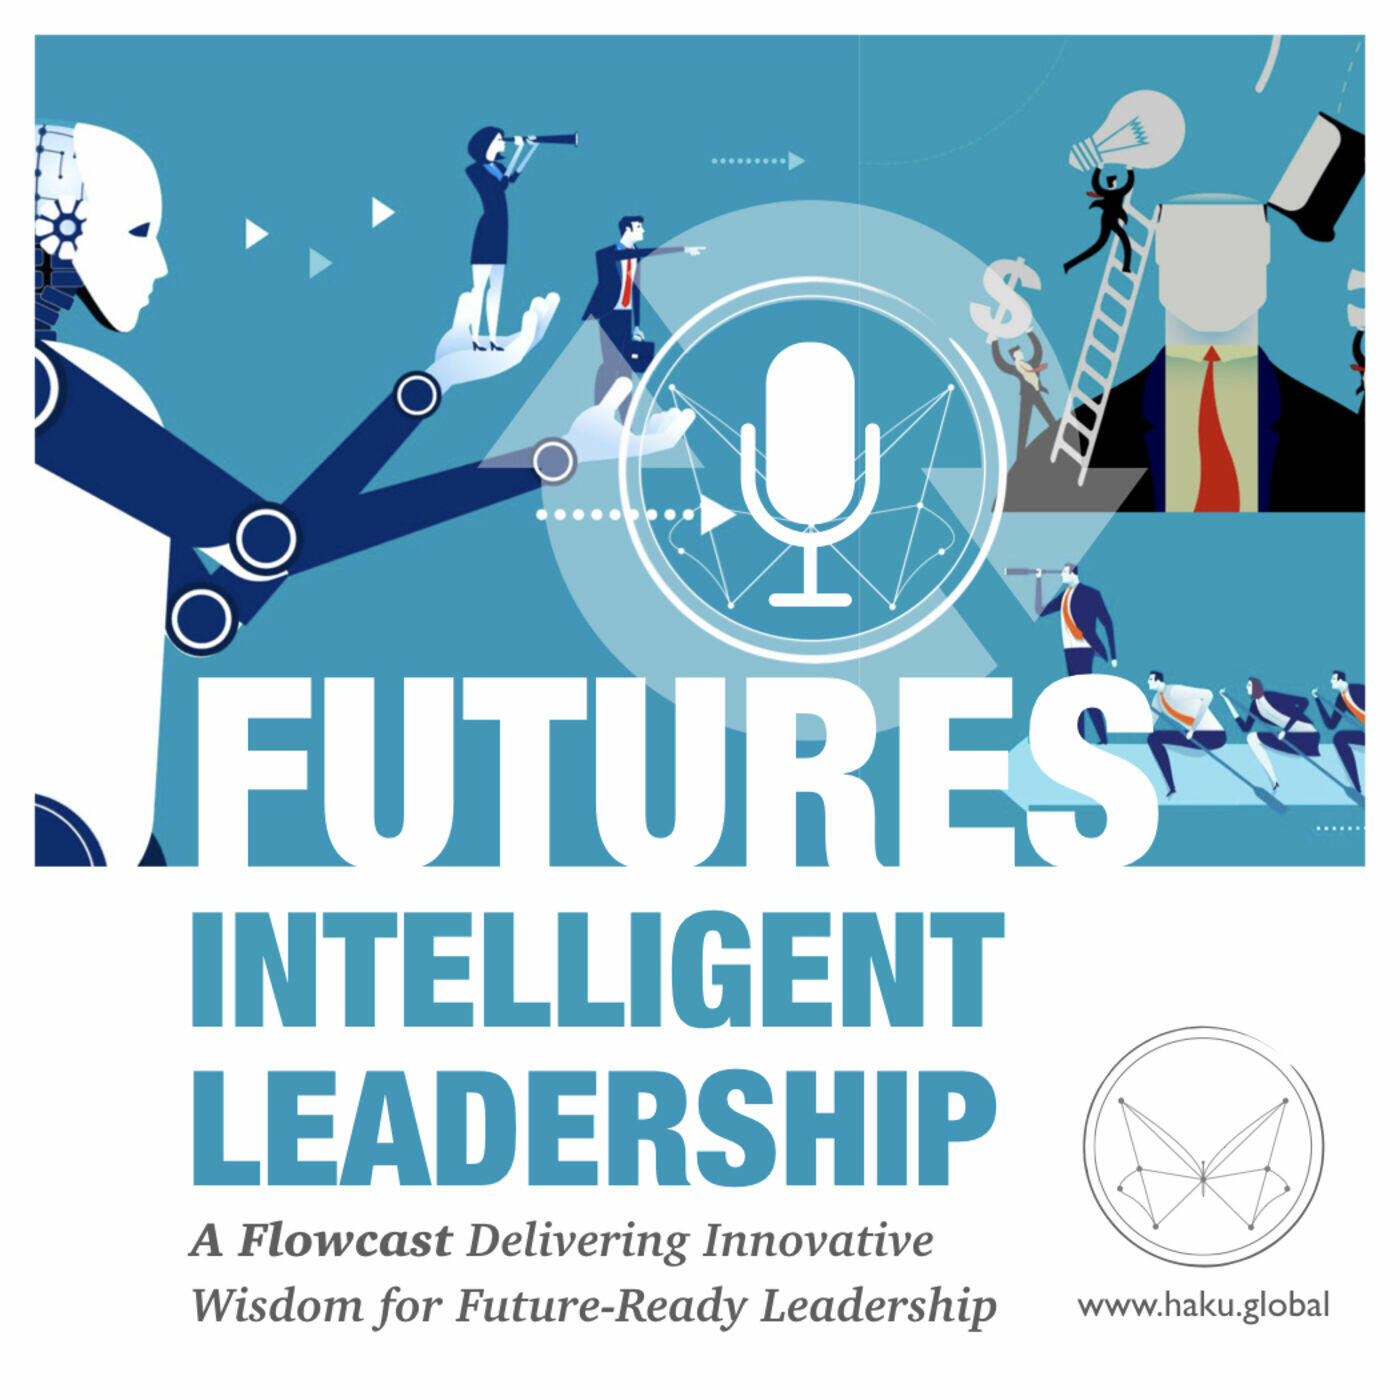 Futures Intelligence Leadership: Innovative Wisdom for Future-Ready Organizations